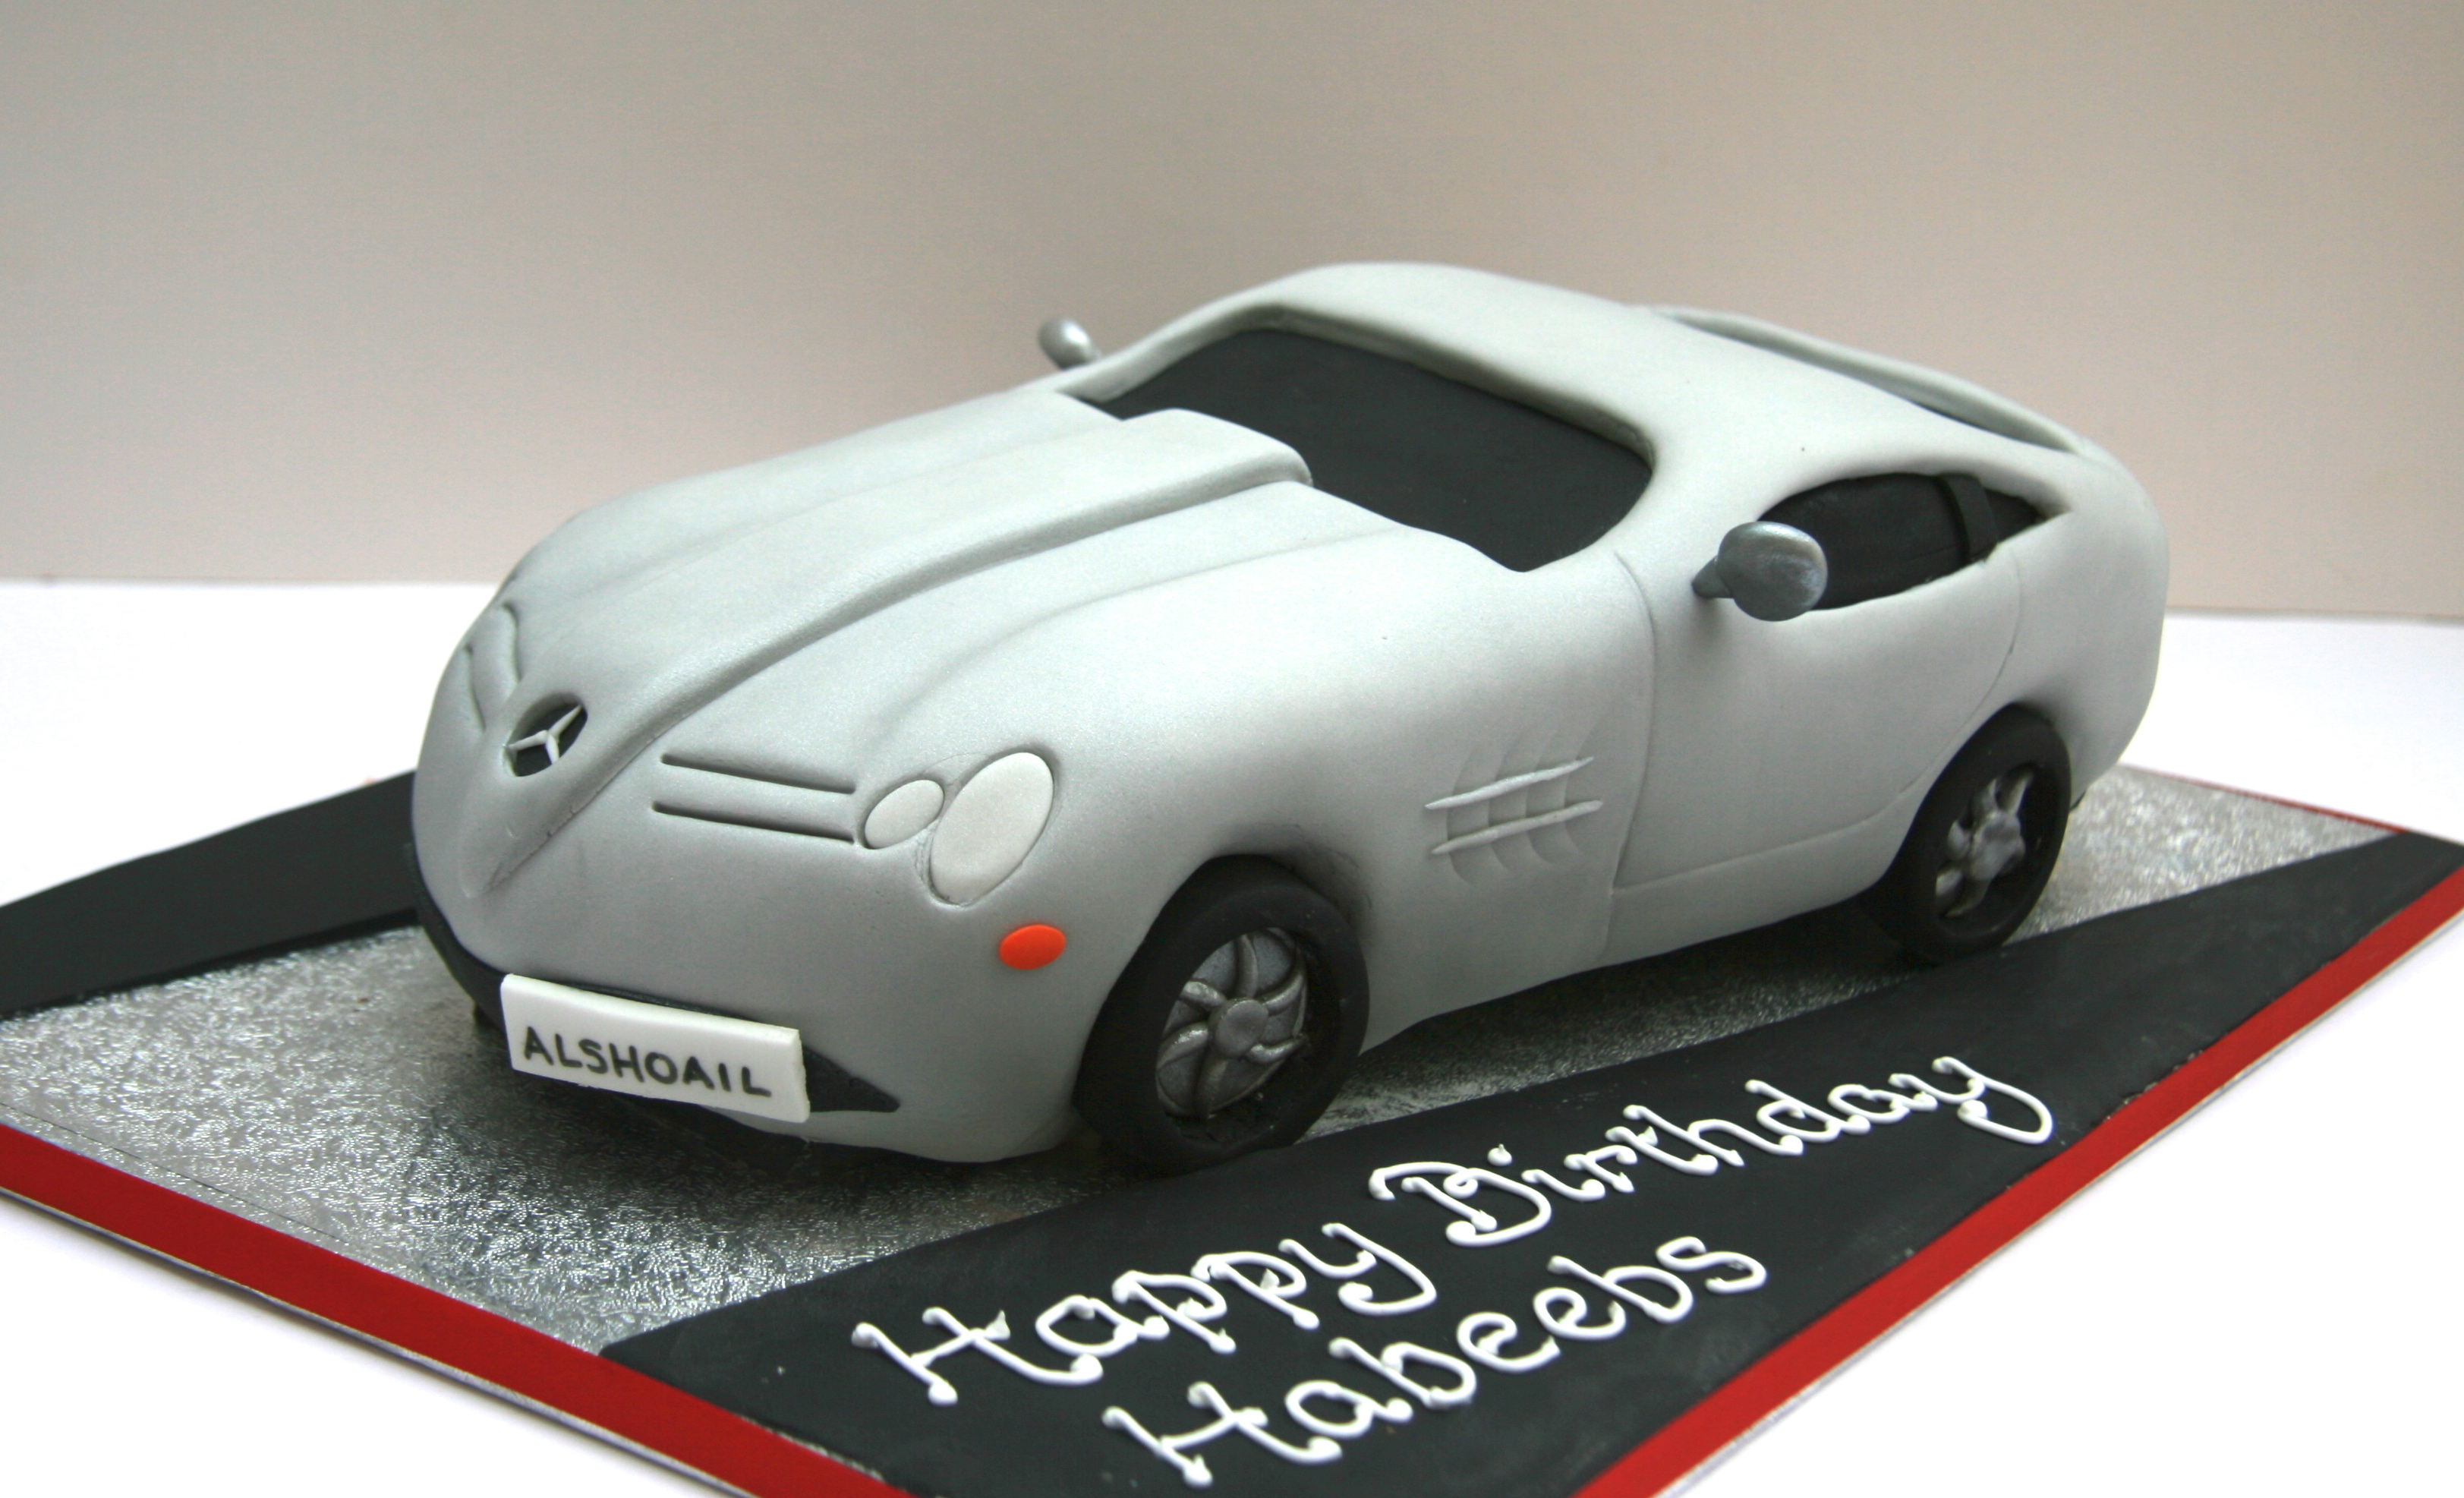 9 mercedes adult birthday cakes for men photo mercedes for Mercedes benz birthday cake